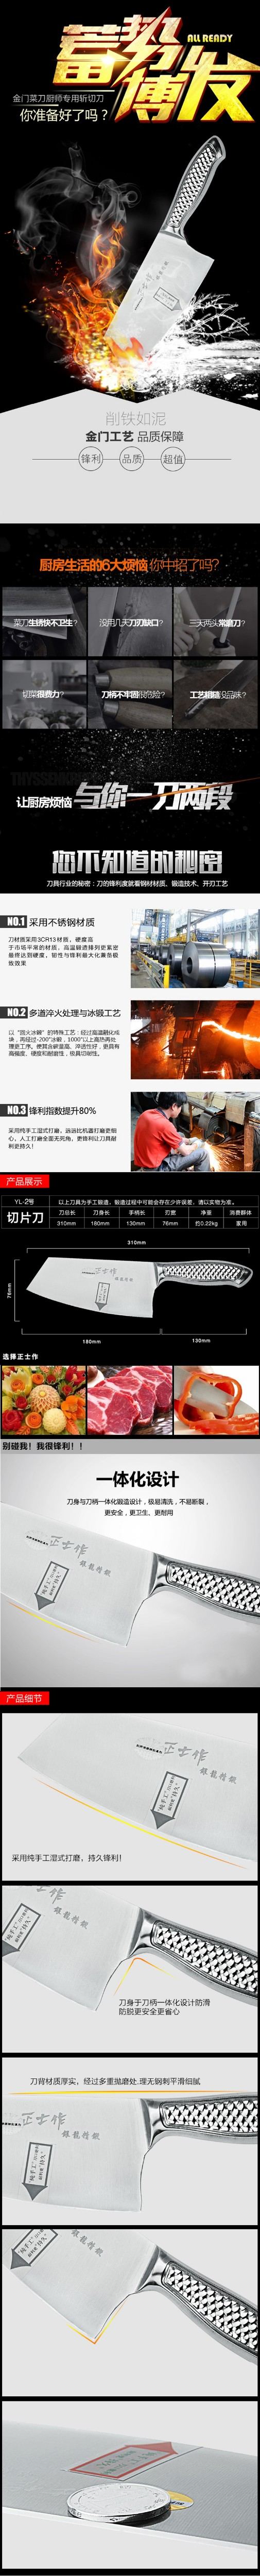 Buy Free Shipping ZSZ Stainless Steel Kitchen Cut Meat Vegetable Fish Fruit Knife Household Chef Slicing Knives Cleaver Knife cheap